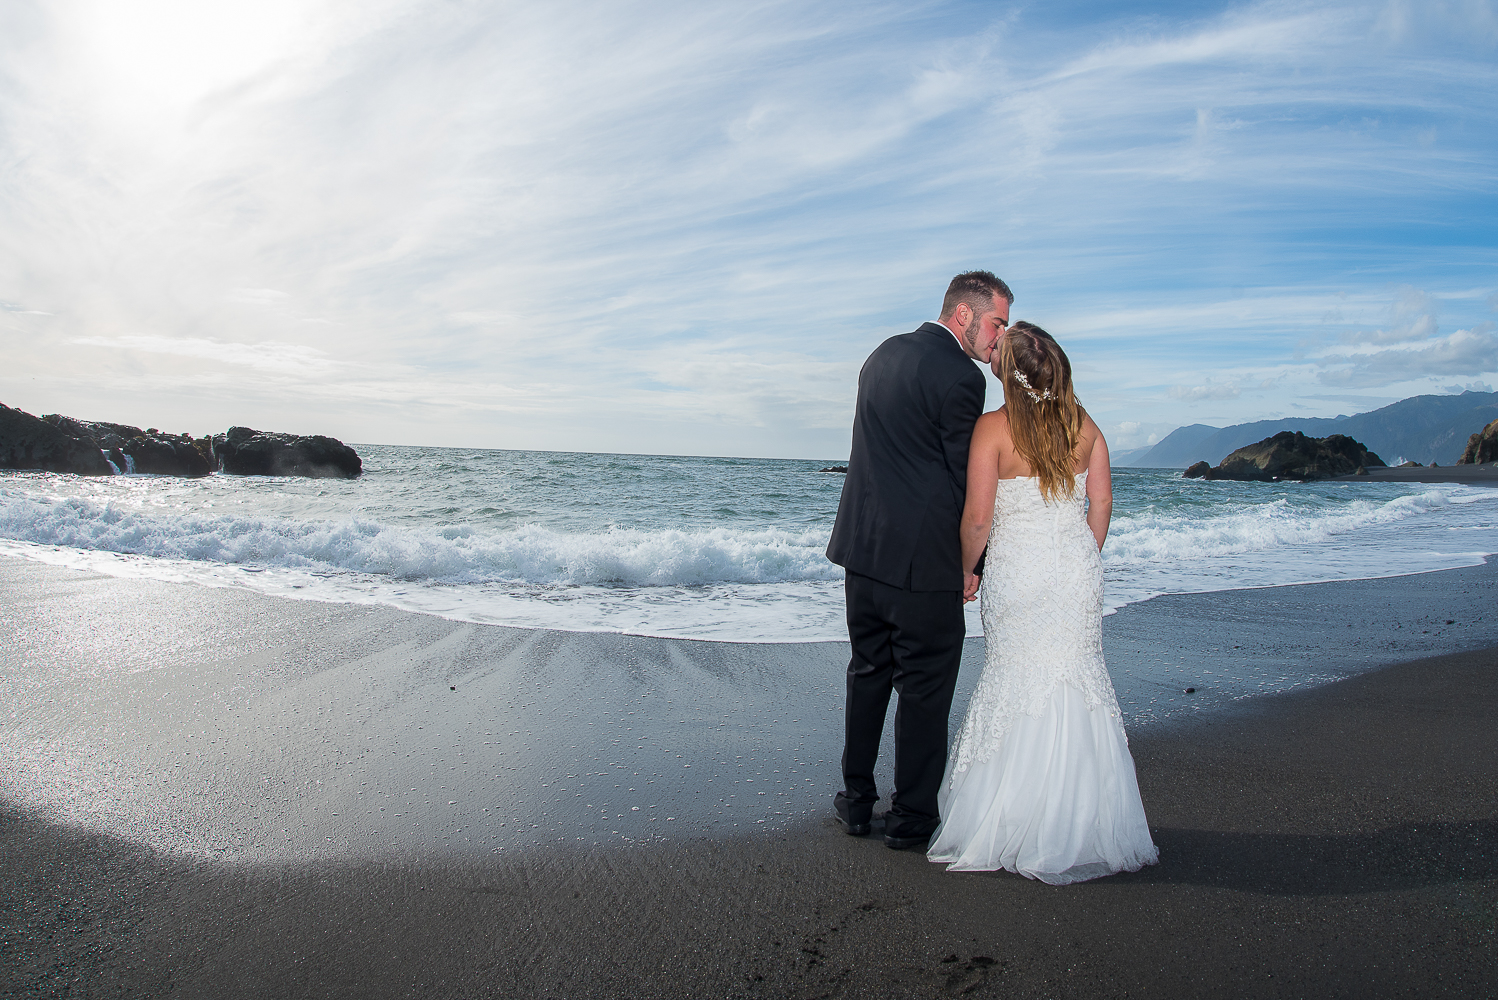 Shelter Cove-Intimate Destination beach Wedding-Parky's Pics Photography-Humboldt County_-37.jpg